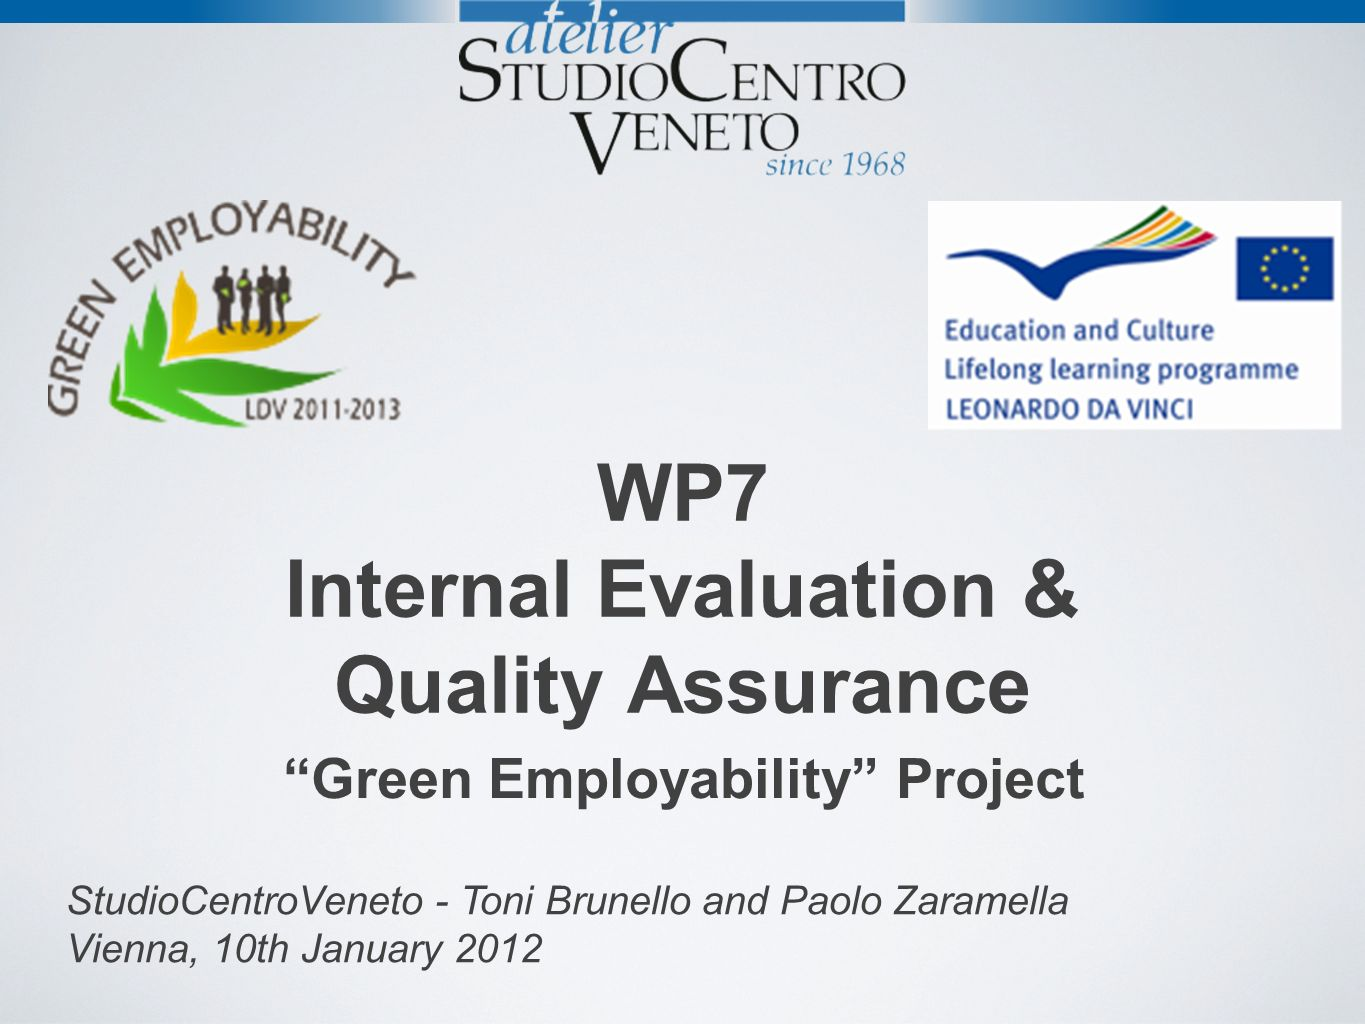 WP7 Internal Evaluation & Quality Assurance Green Employability Project StudioCentroVeneto - Toni Brunello and Paolo Zaramella Vienna, 10th January 20